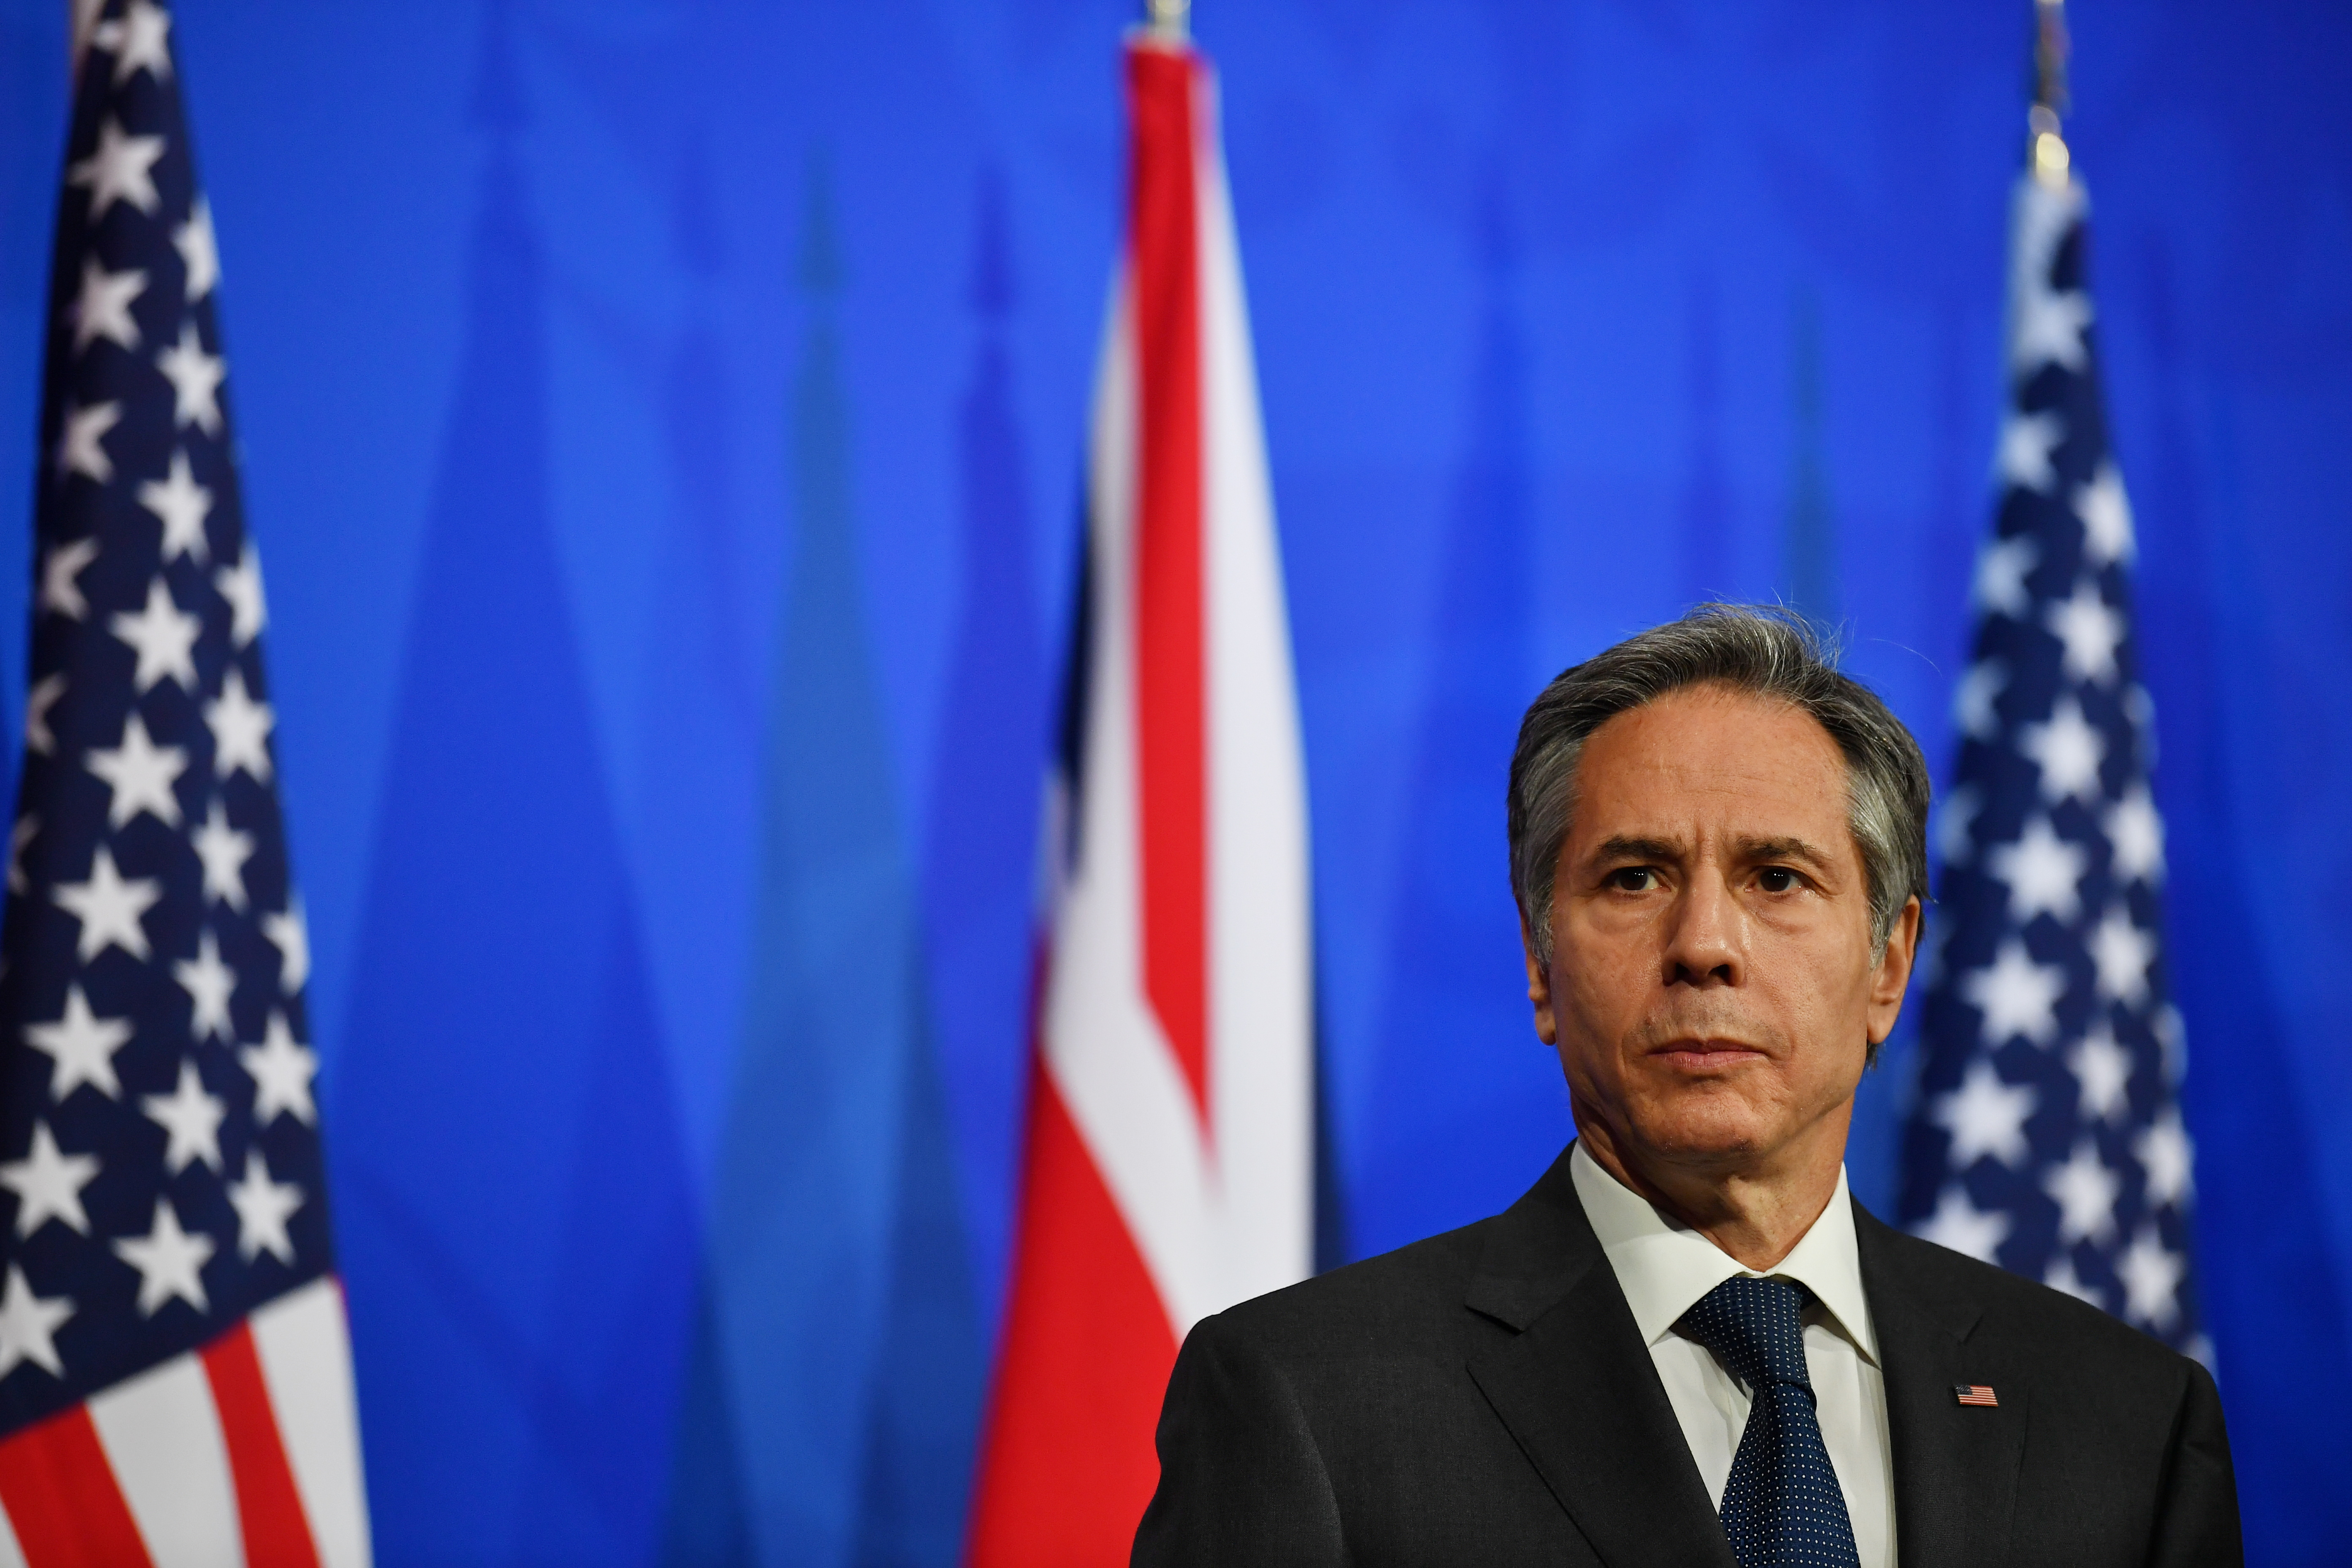 U.S. Secretary of State Antony Blinken attends a joint news conference following a bilateral meeting with Britain's Foreign Secretary Dominic Raab in London, Britain May 3, 2021 during the G7 foreign ministers meeting. Ben Stansall/Pool via REUTERS